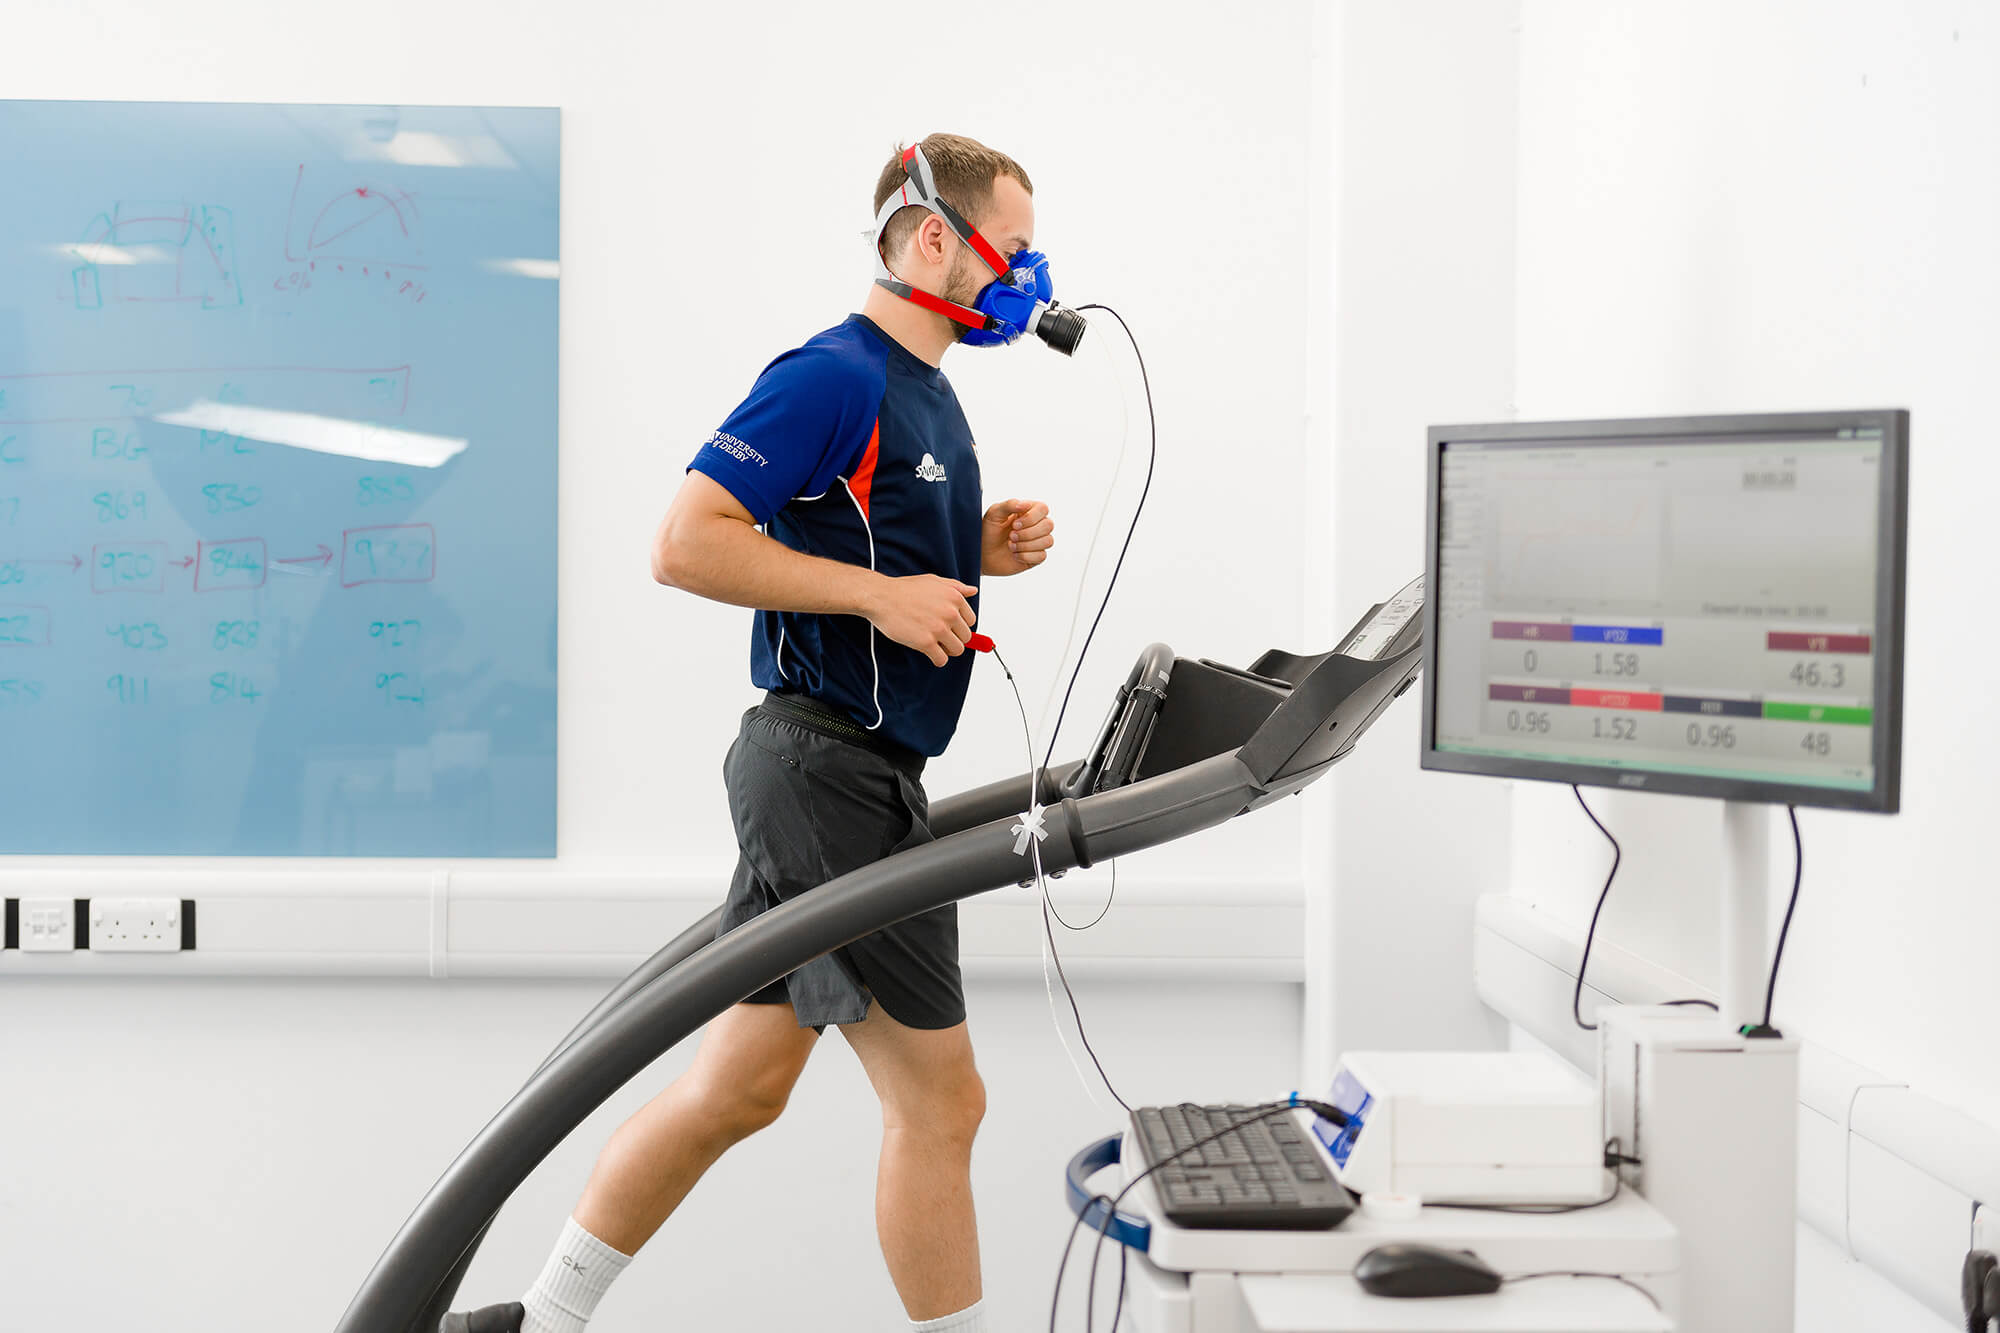 Runner being analysed in the Physiology Laboratory